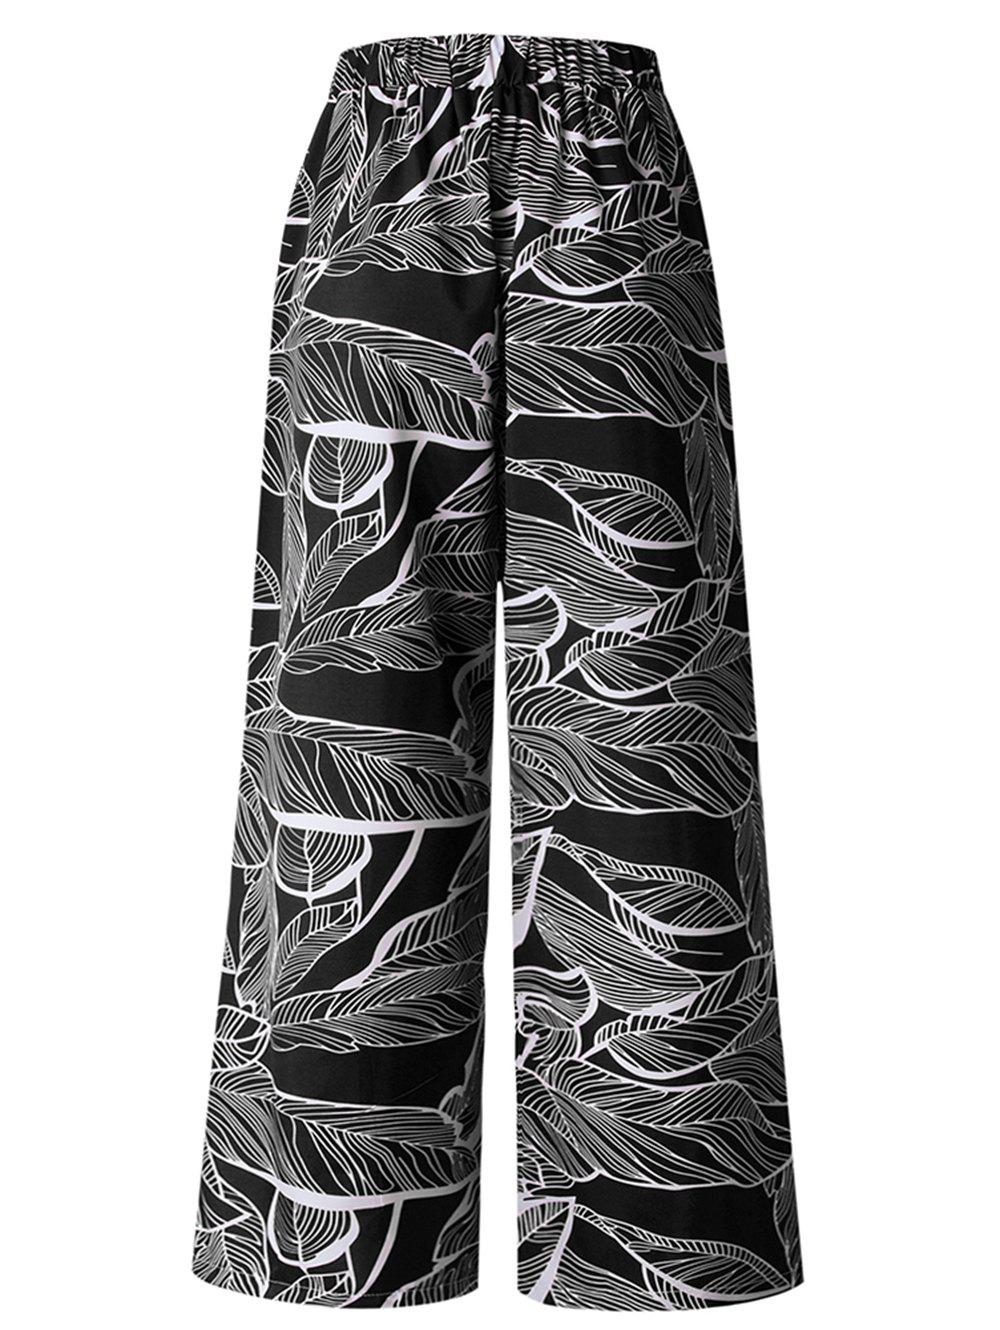 Outfits Womens Casual Floral Print High Waist Wide Leg Long Palazzo Pants with Pockets